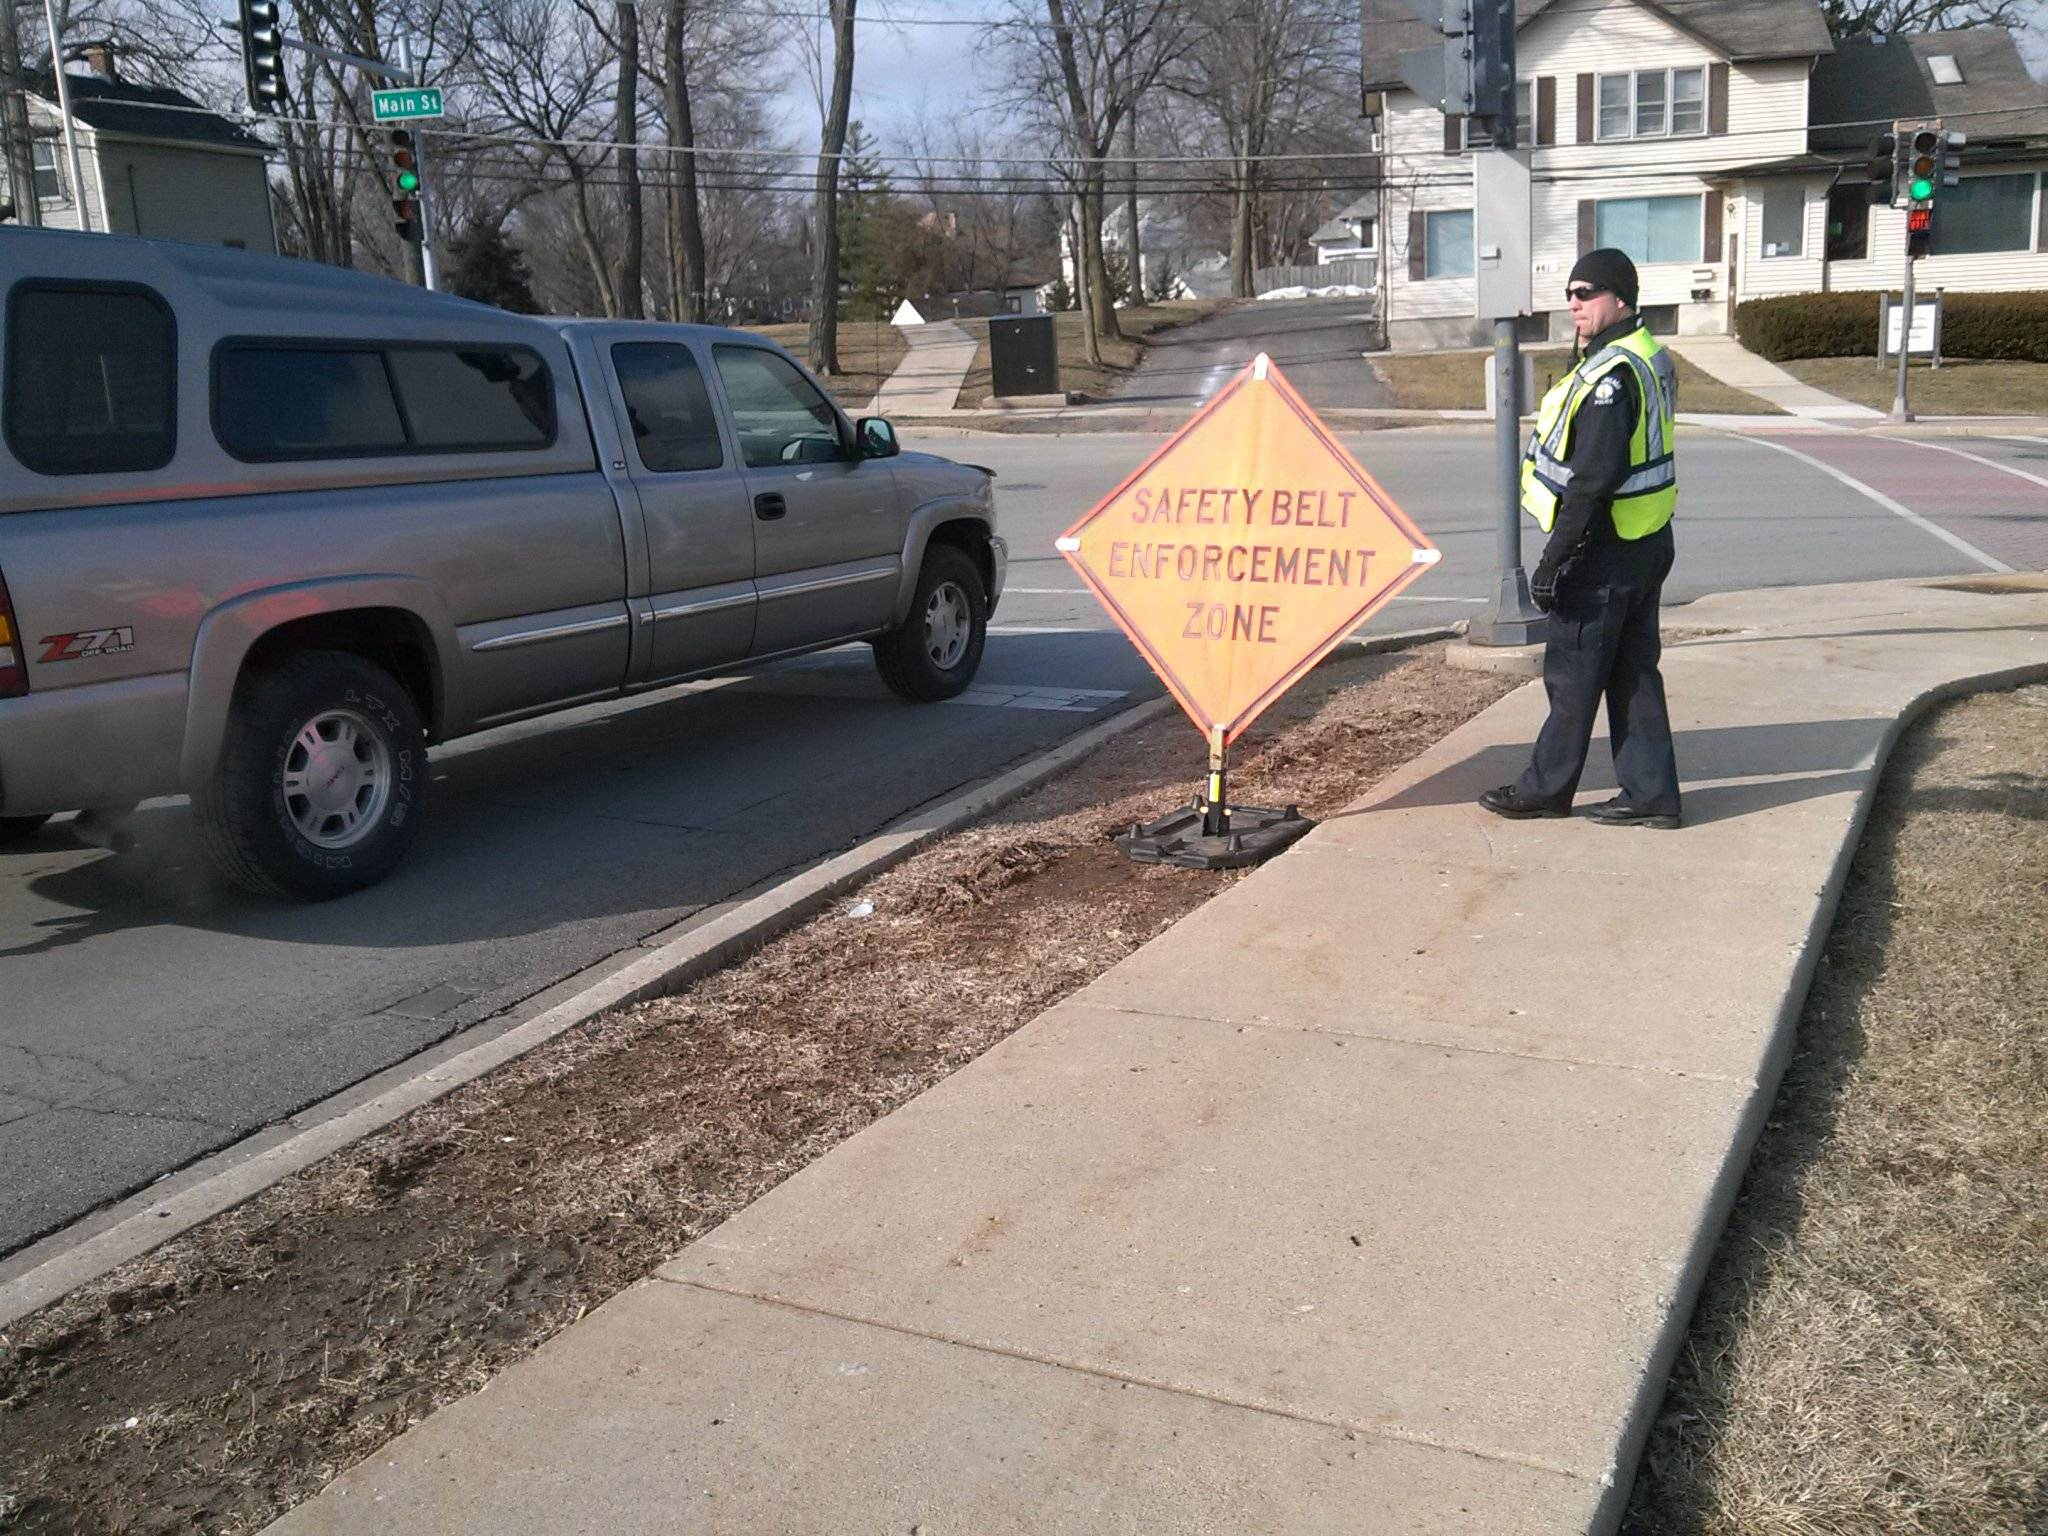 One of West Chicago's Finest checks passing cars for seatbelt safety during Safety Campaign #3.